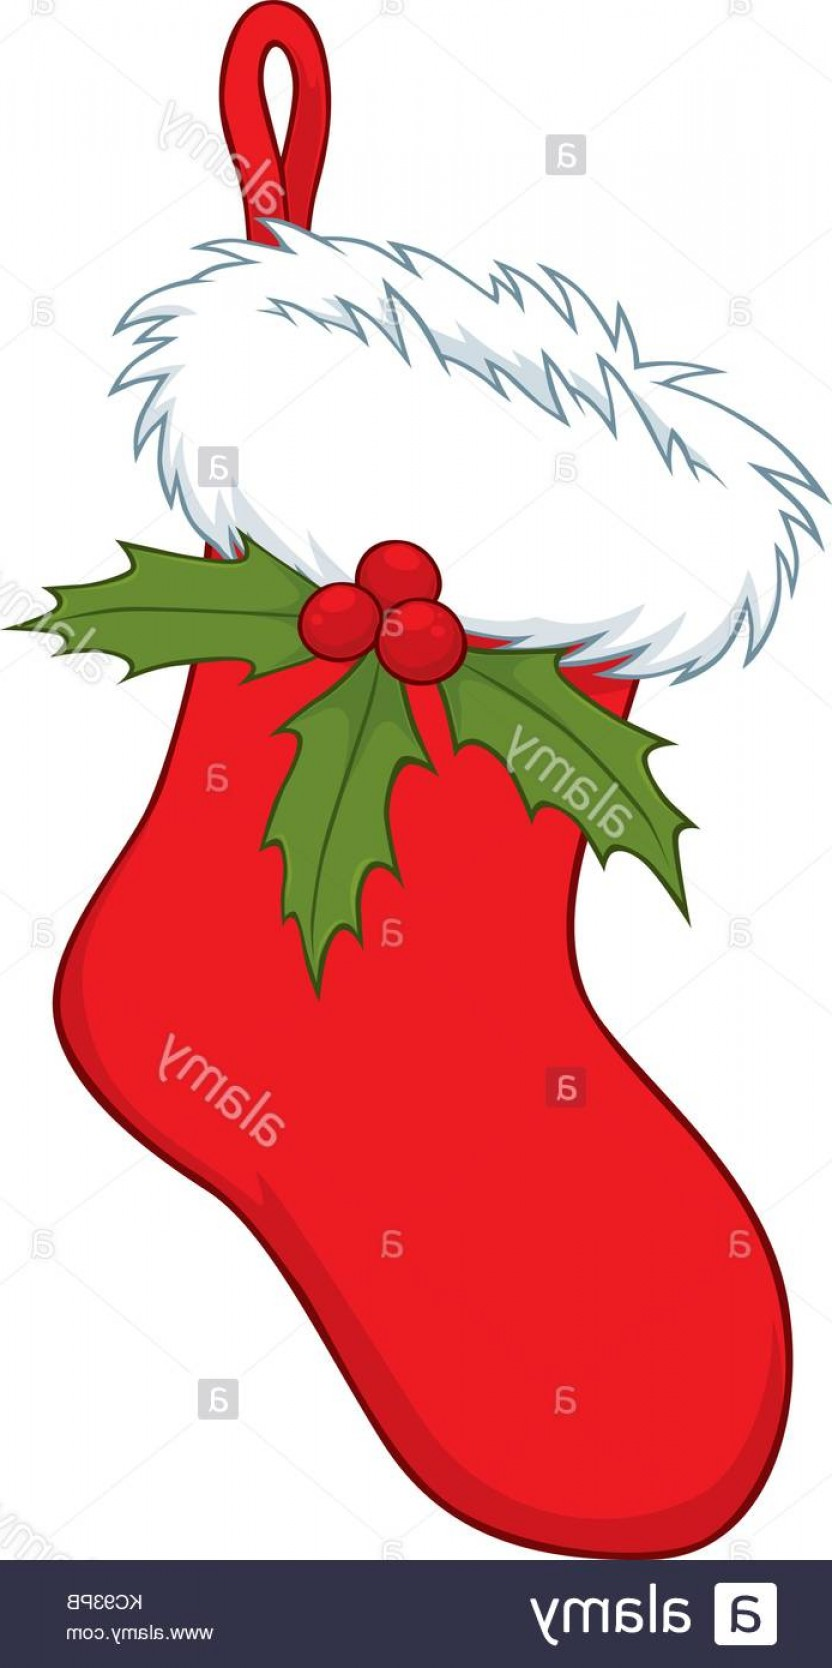 Vector-Based Grayscale Christmas: Stock Image Vector Illustration Of Christmas Stocking Decorated With Holly Leaves